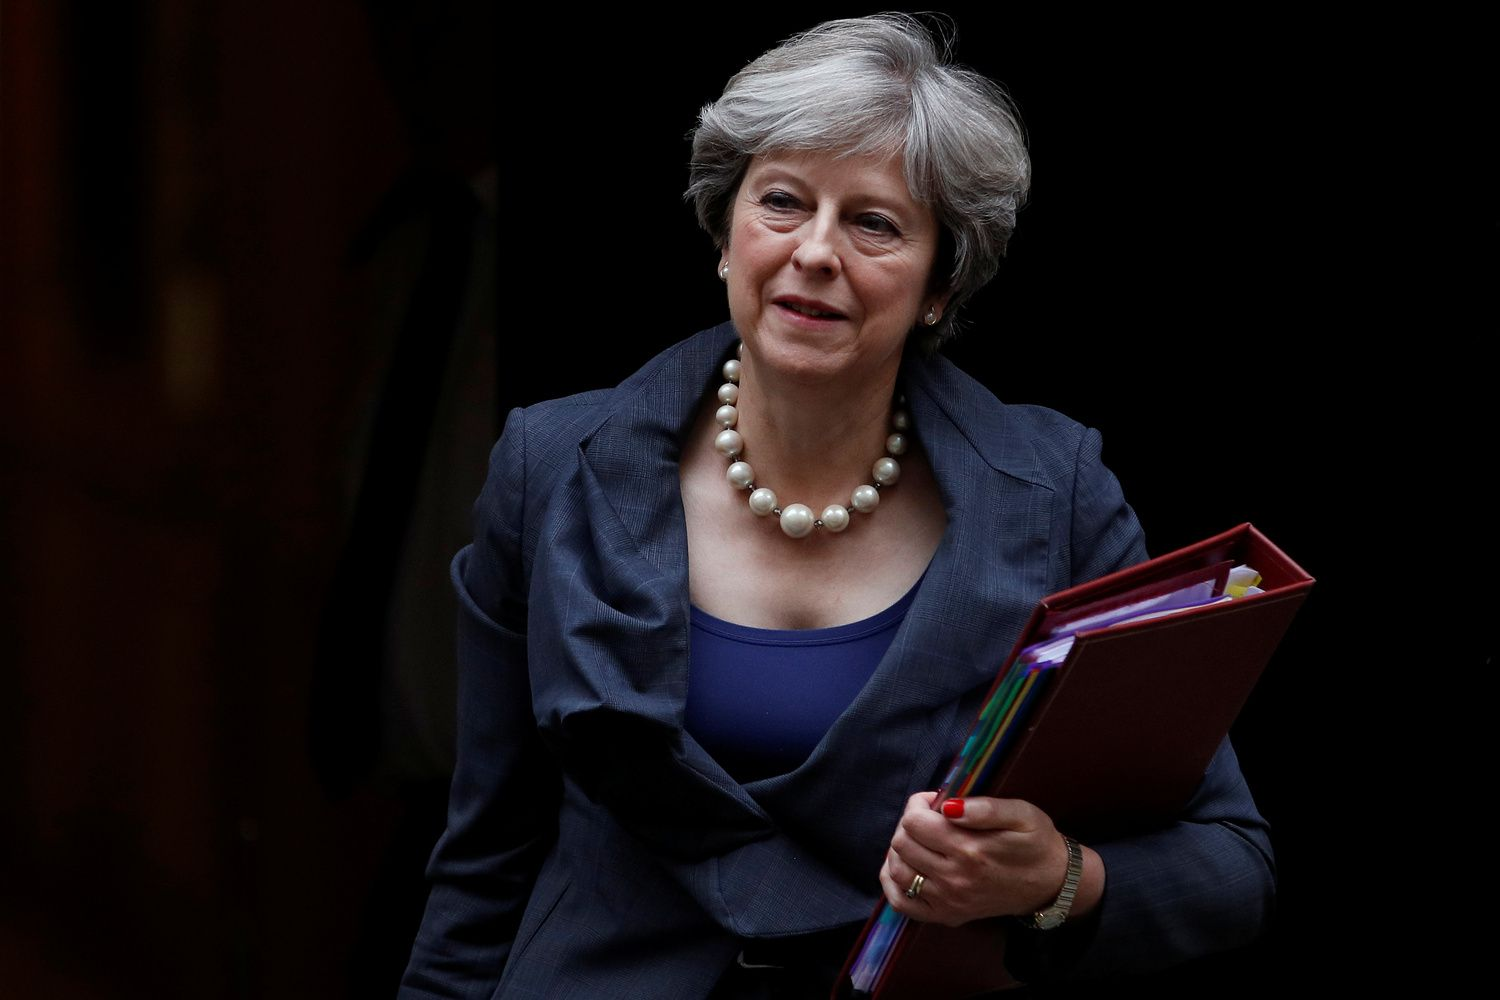 May Heads to Brussels as Lawmakers Move to Block No-Deal Brexit